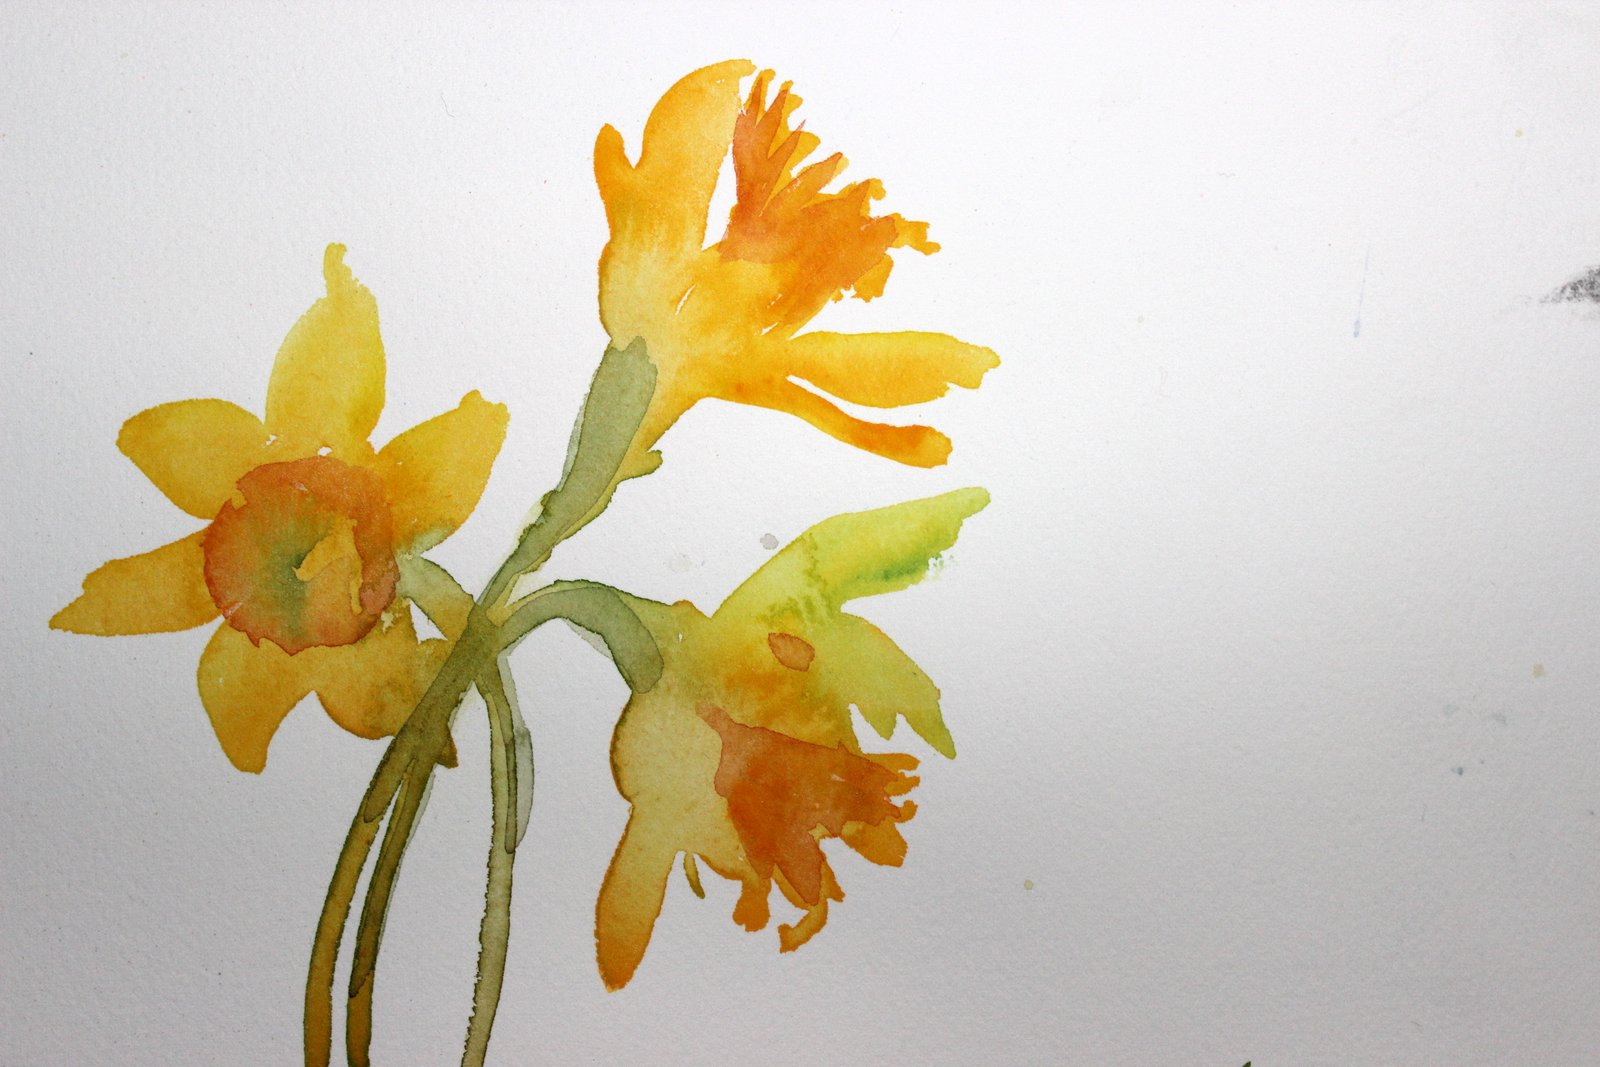 laura's watercolors: final daffodils '13